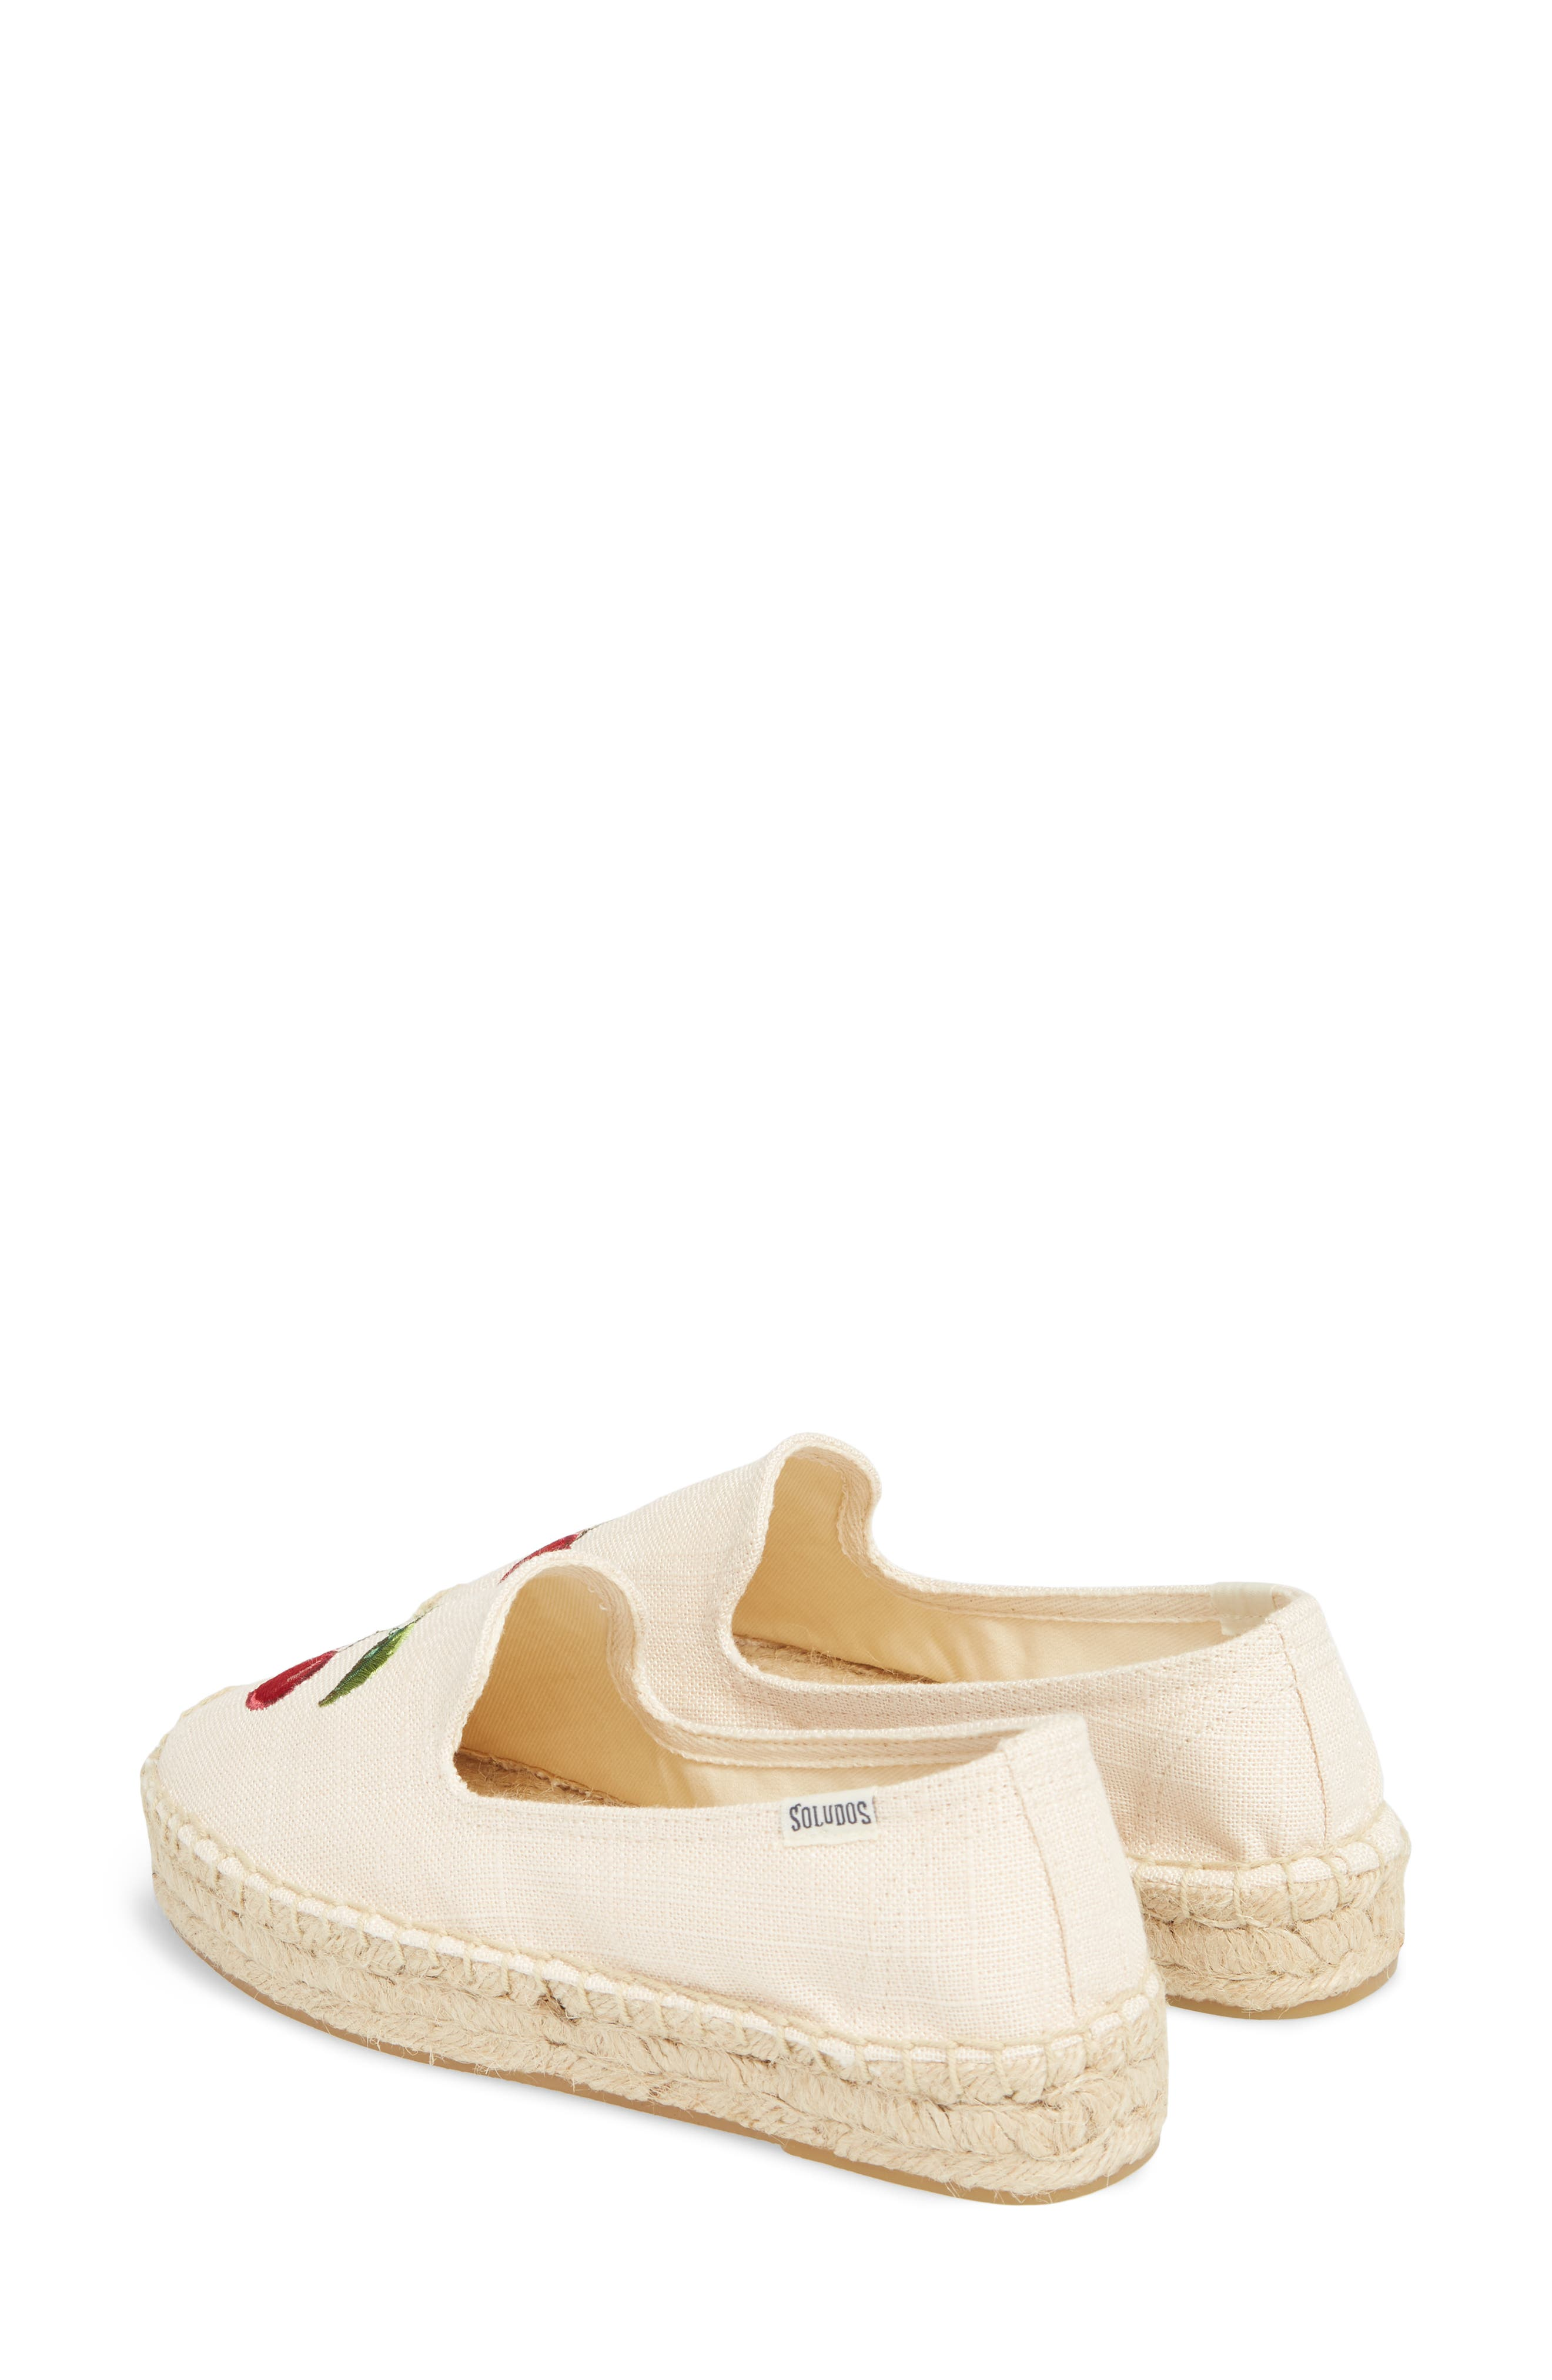 Cherries Embroidered Espadrille,                             Alternate thumbnail 3, color,                             680